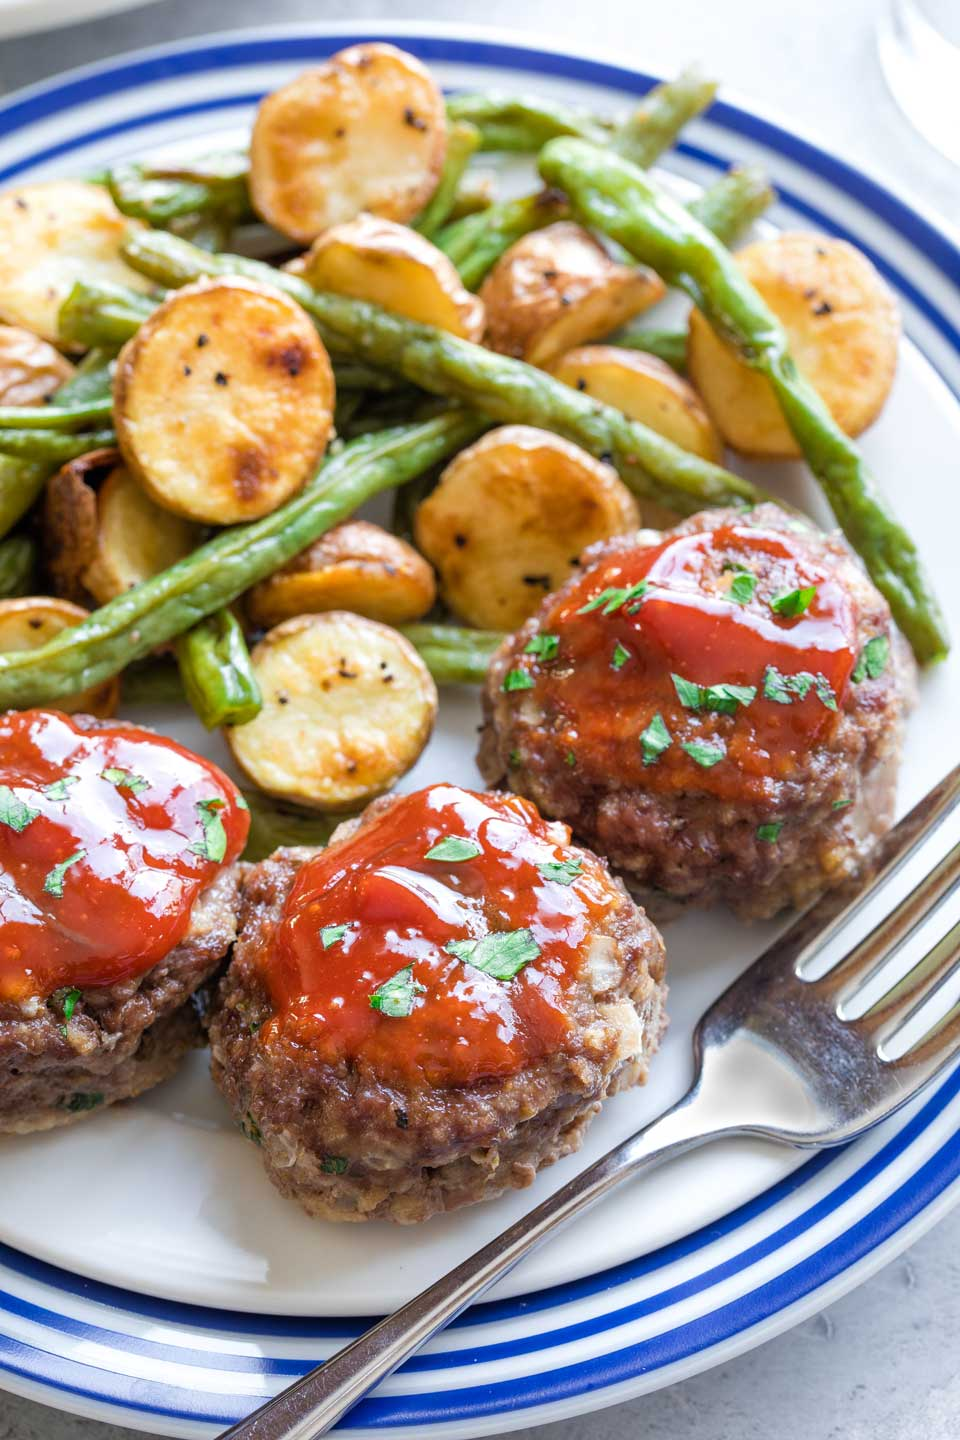 Serving suggestion of meatloaf muffins with roasted potatoes and beans.